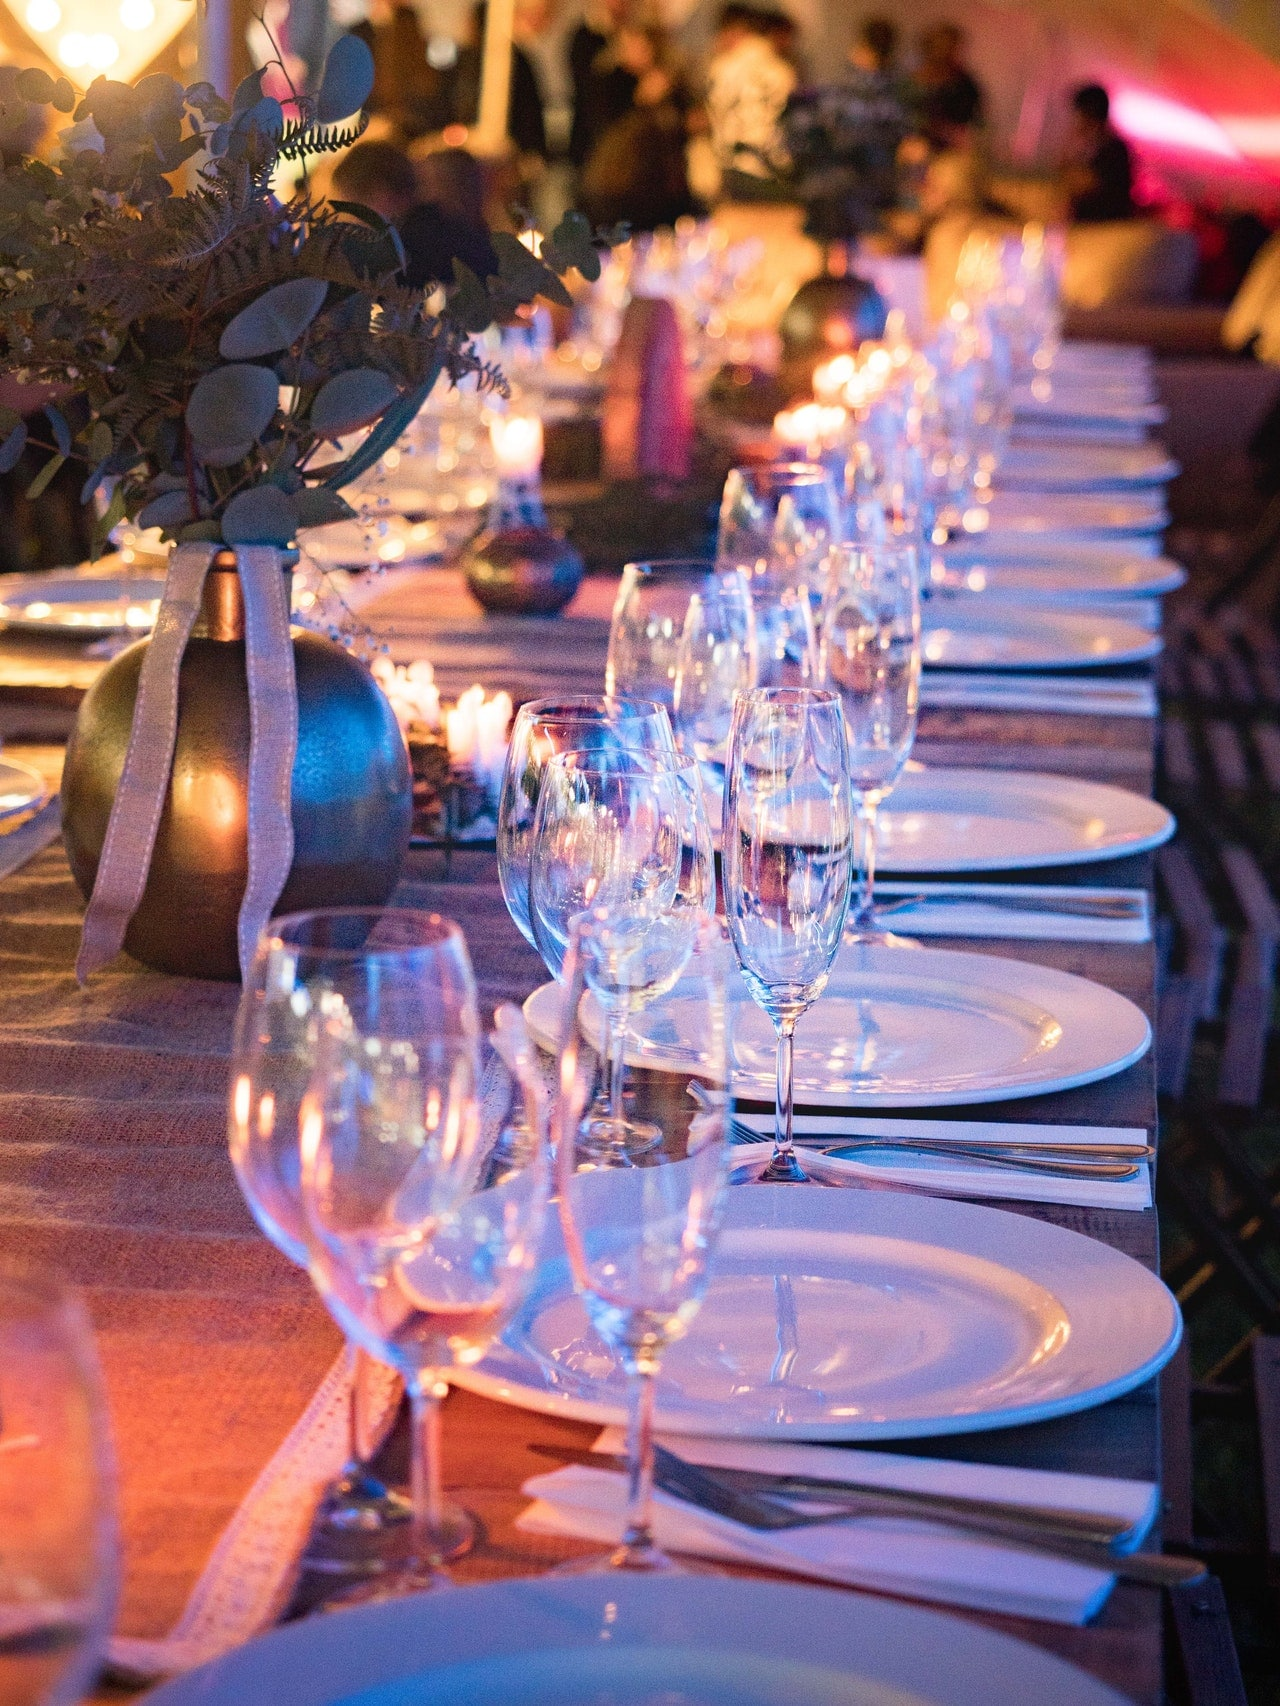 wedding vow renewal ceremony-food and drinks